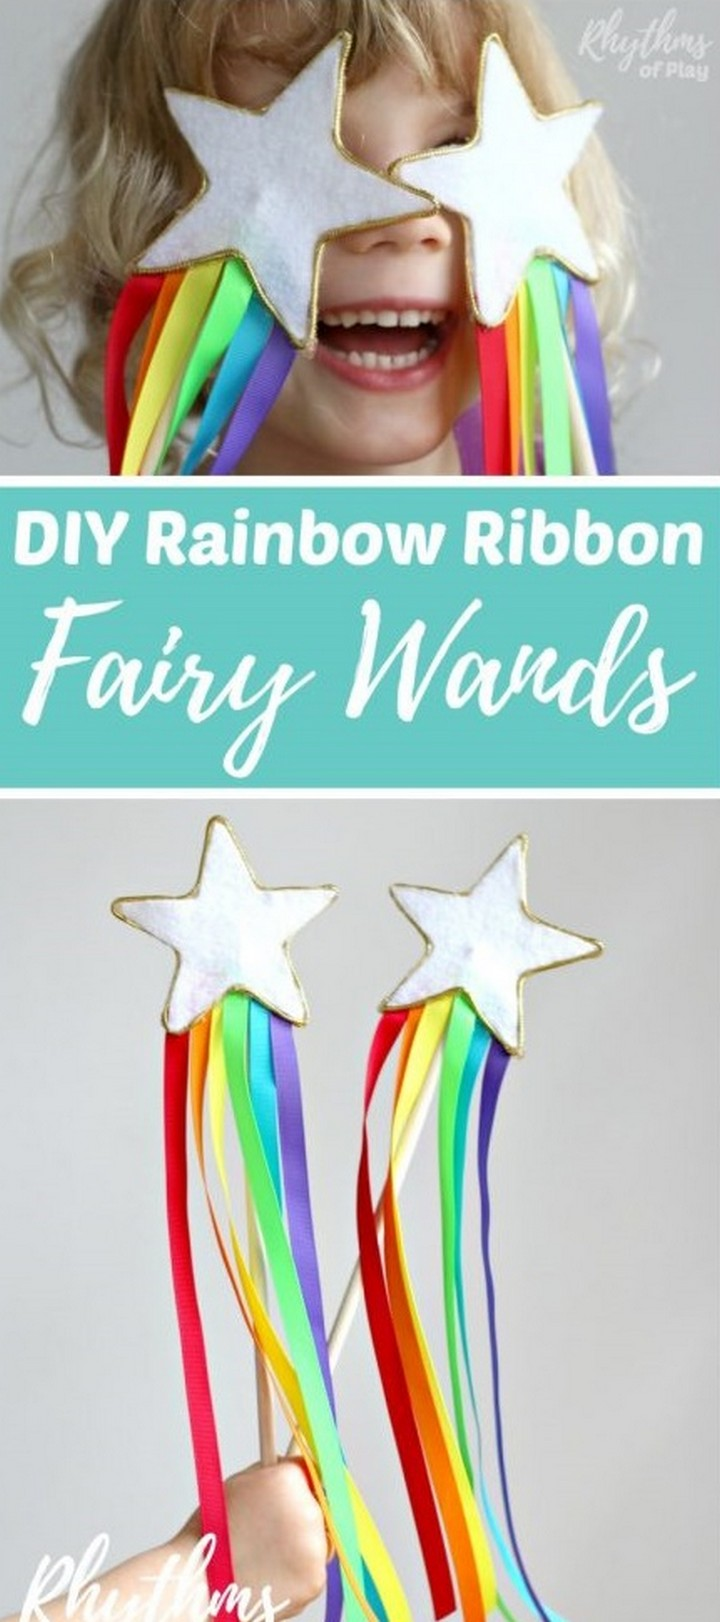 Rainbow Ribbon Magic Wand DIY Toy for Kids